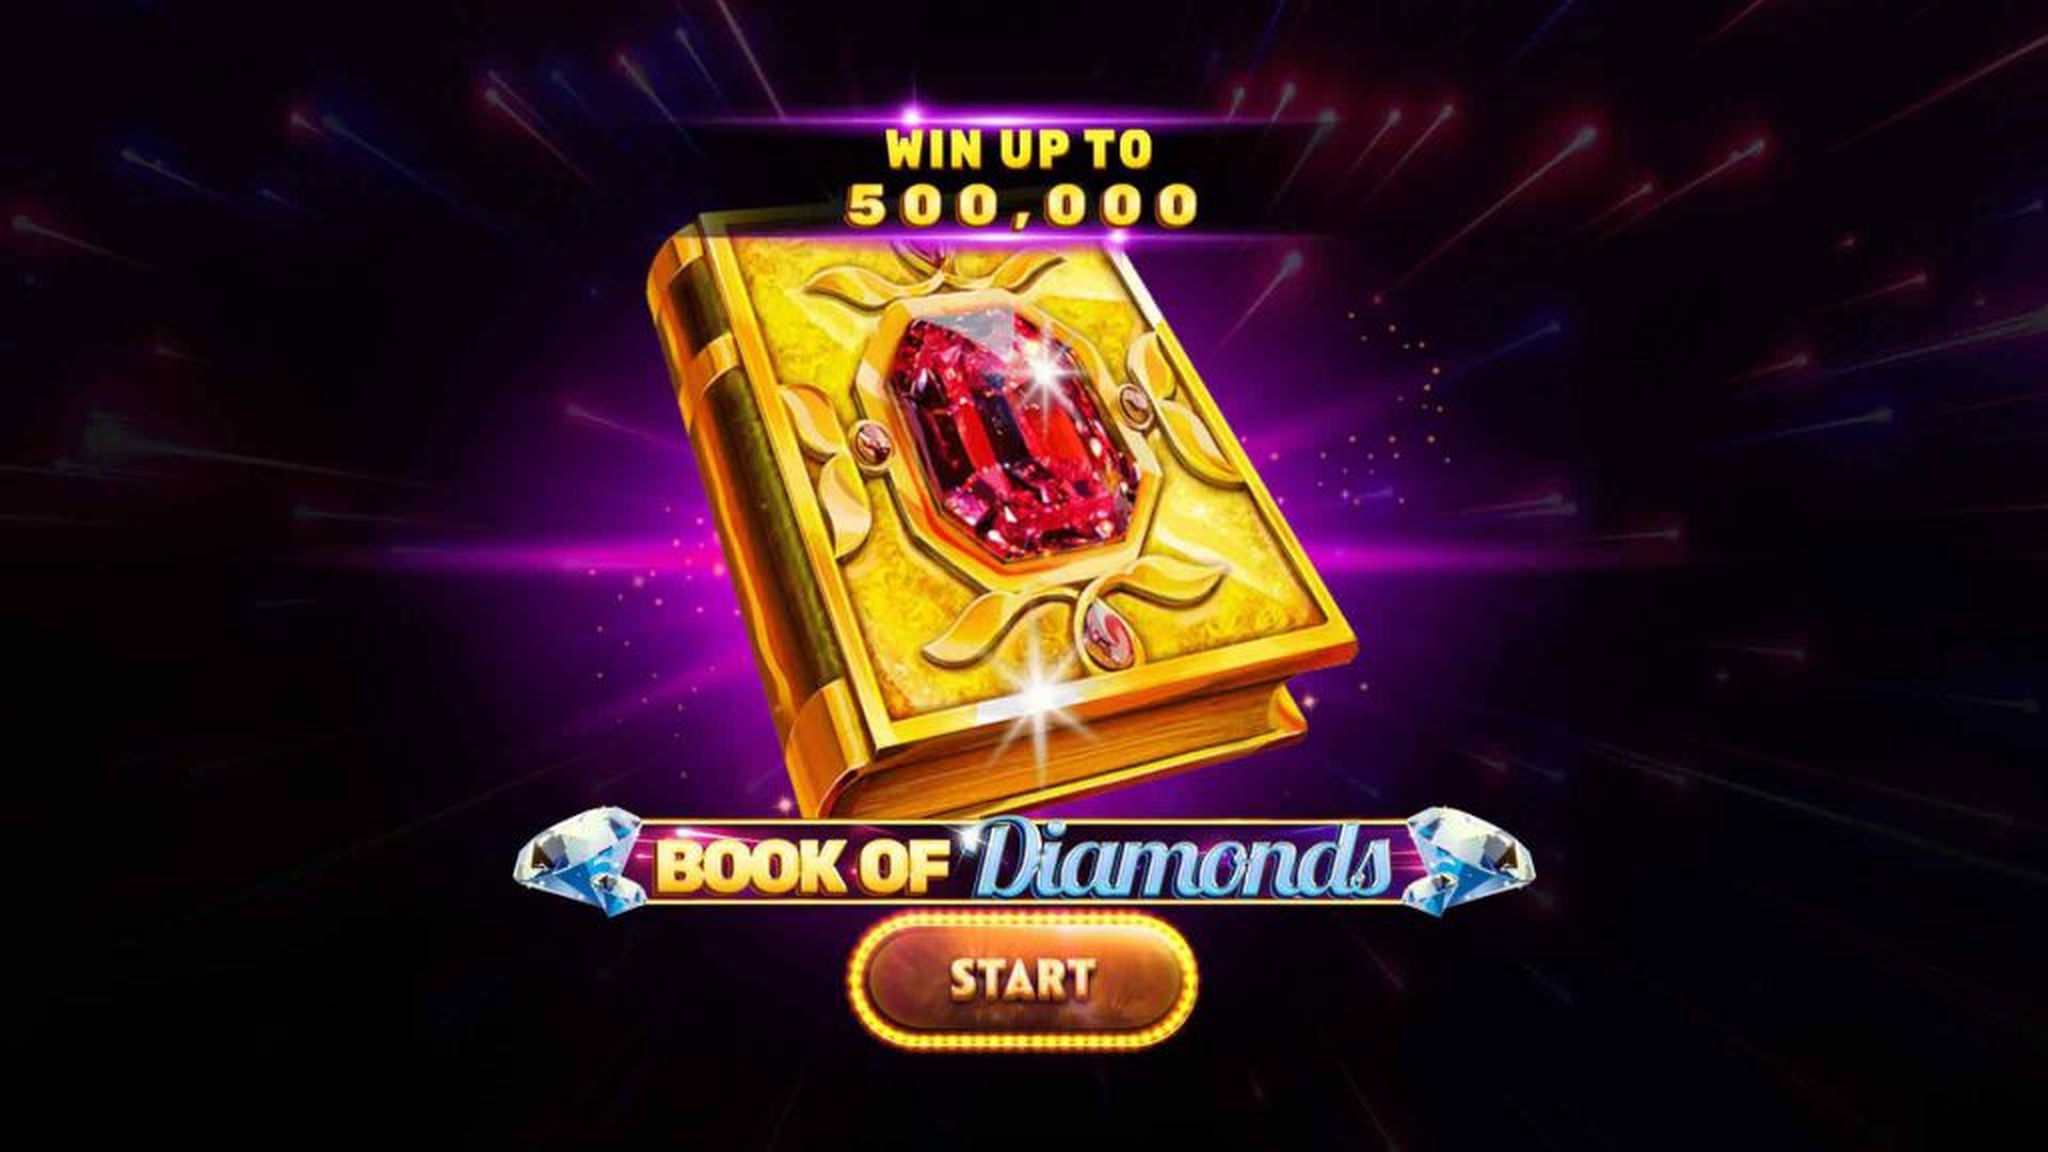 The Book of Diamonds Online Slot Demo Game by Spinomenal